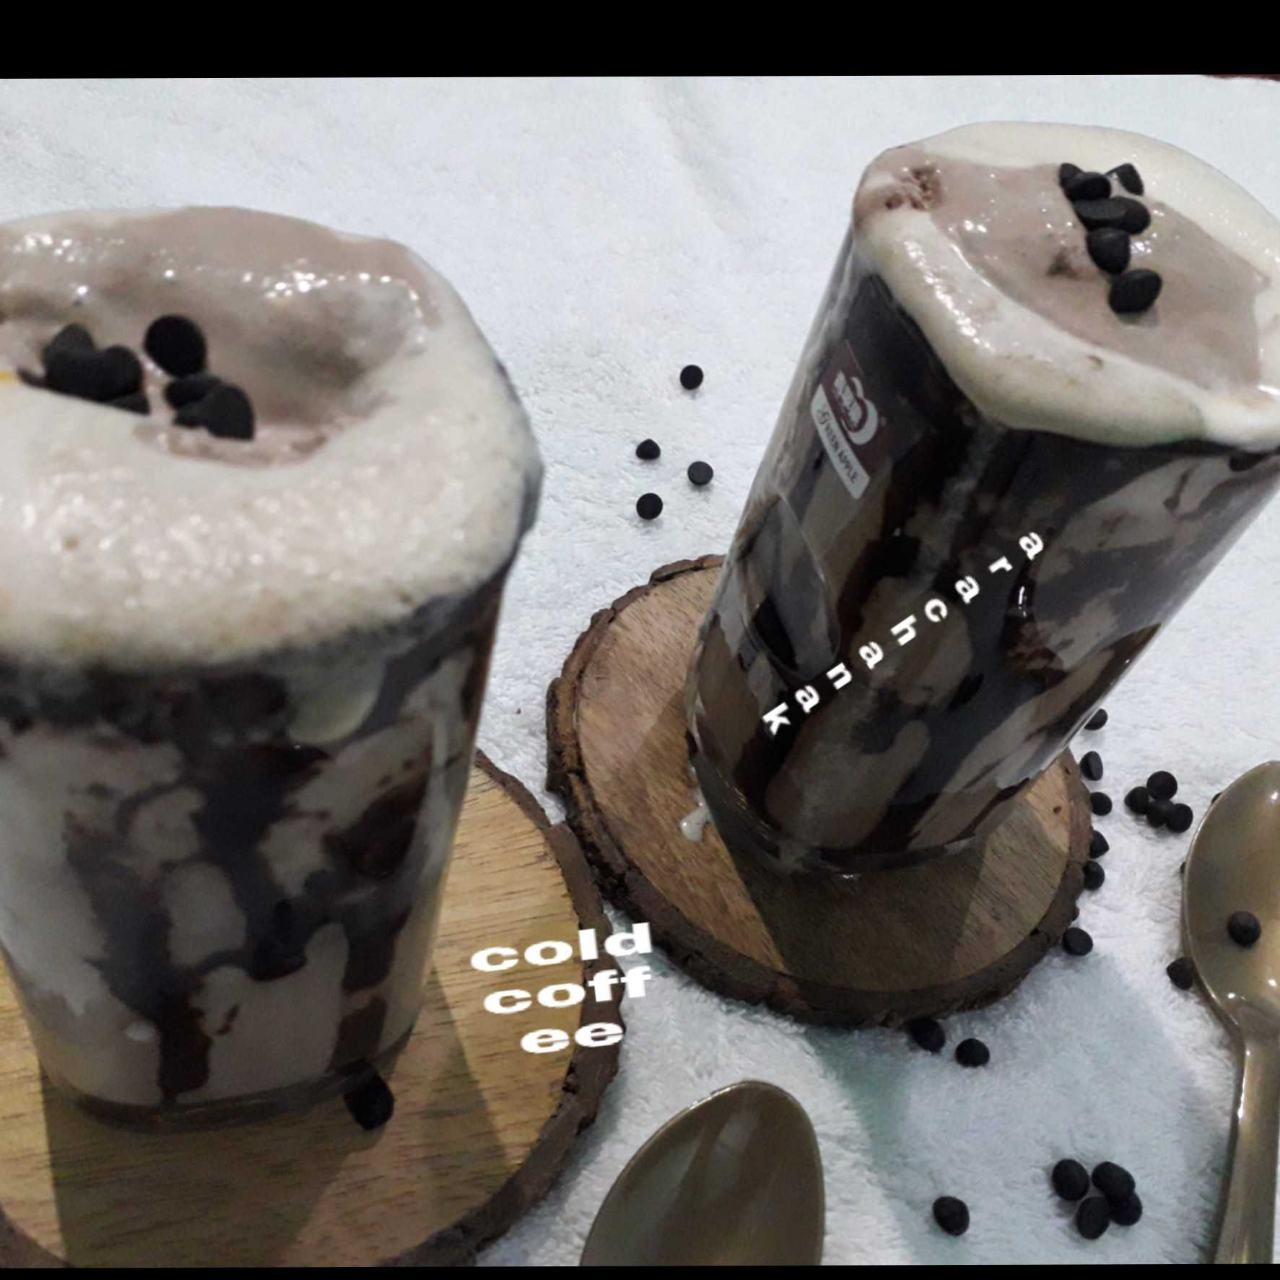 Cold coffee With Icecream Choco Chips